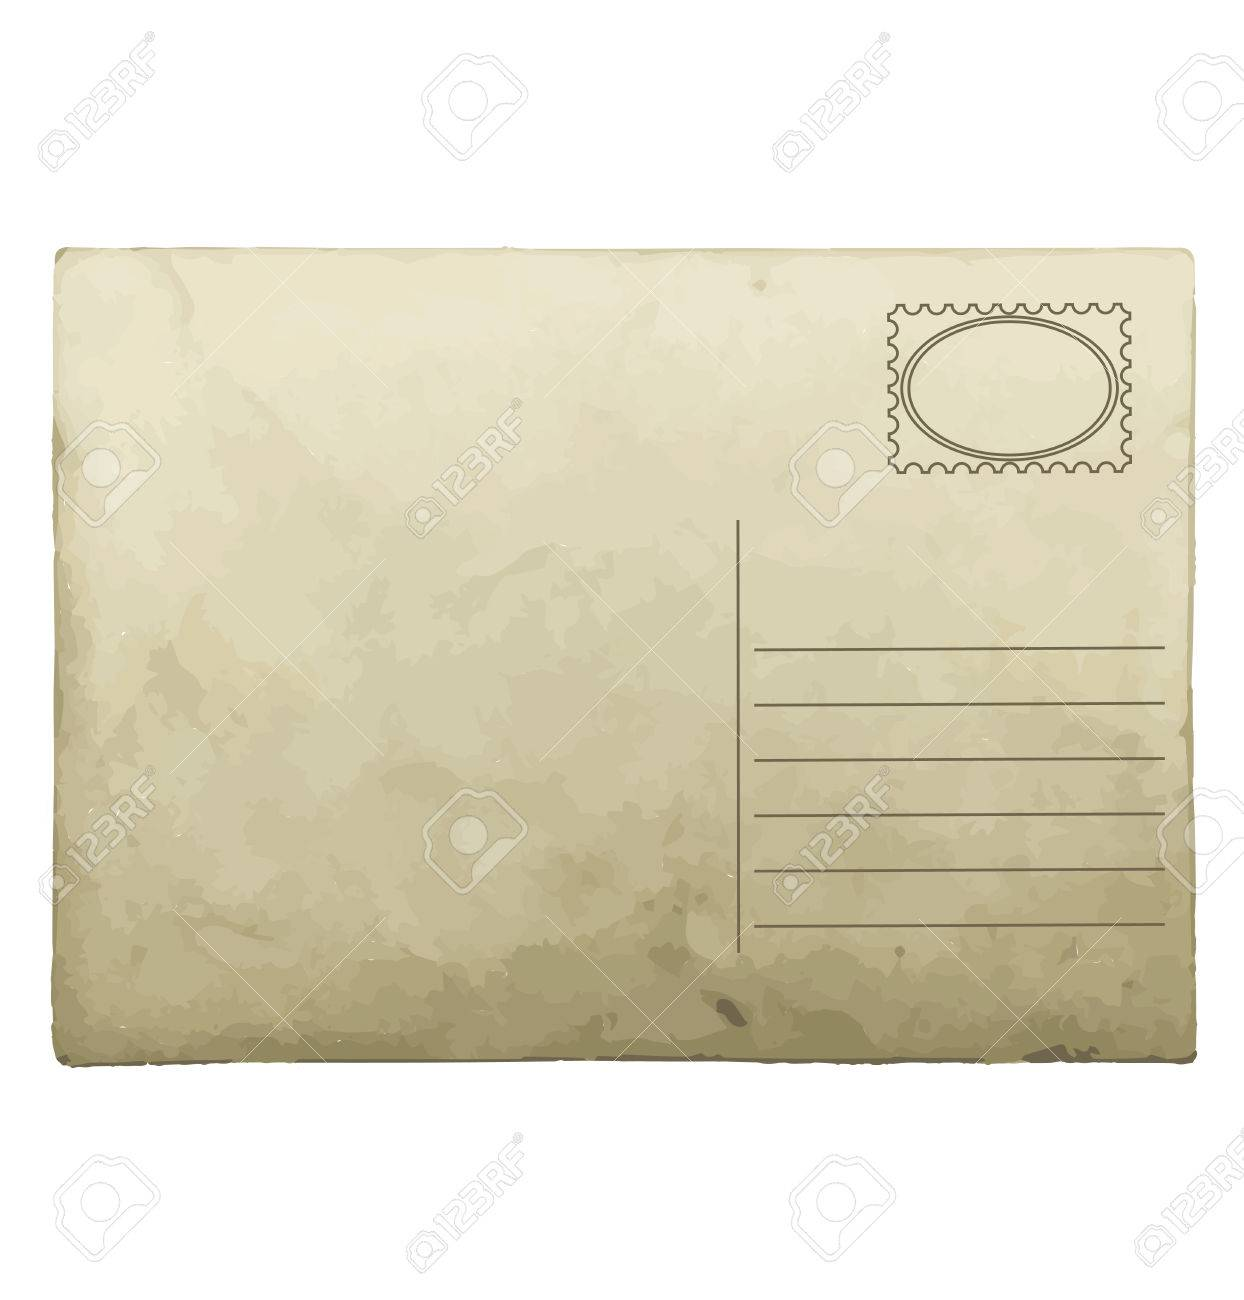 vintage postcard template retro style mail object stock vector 36374740